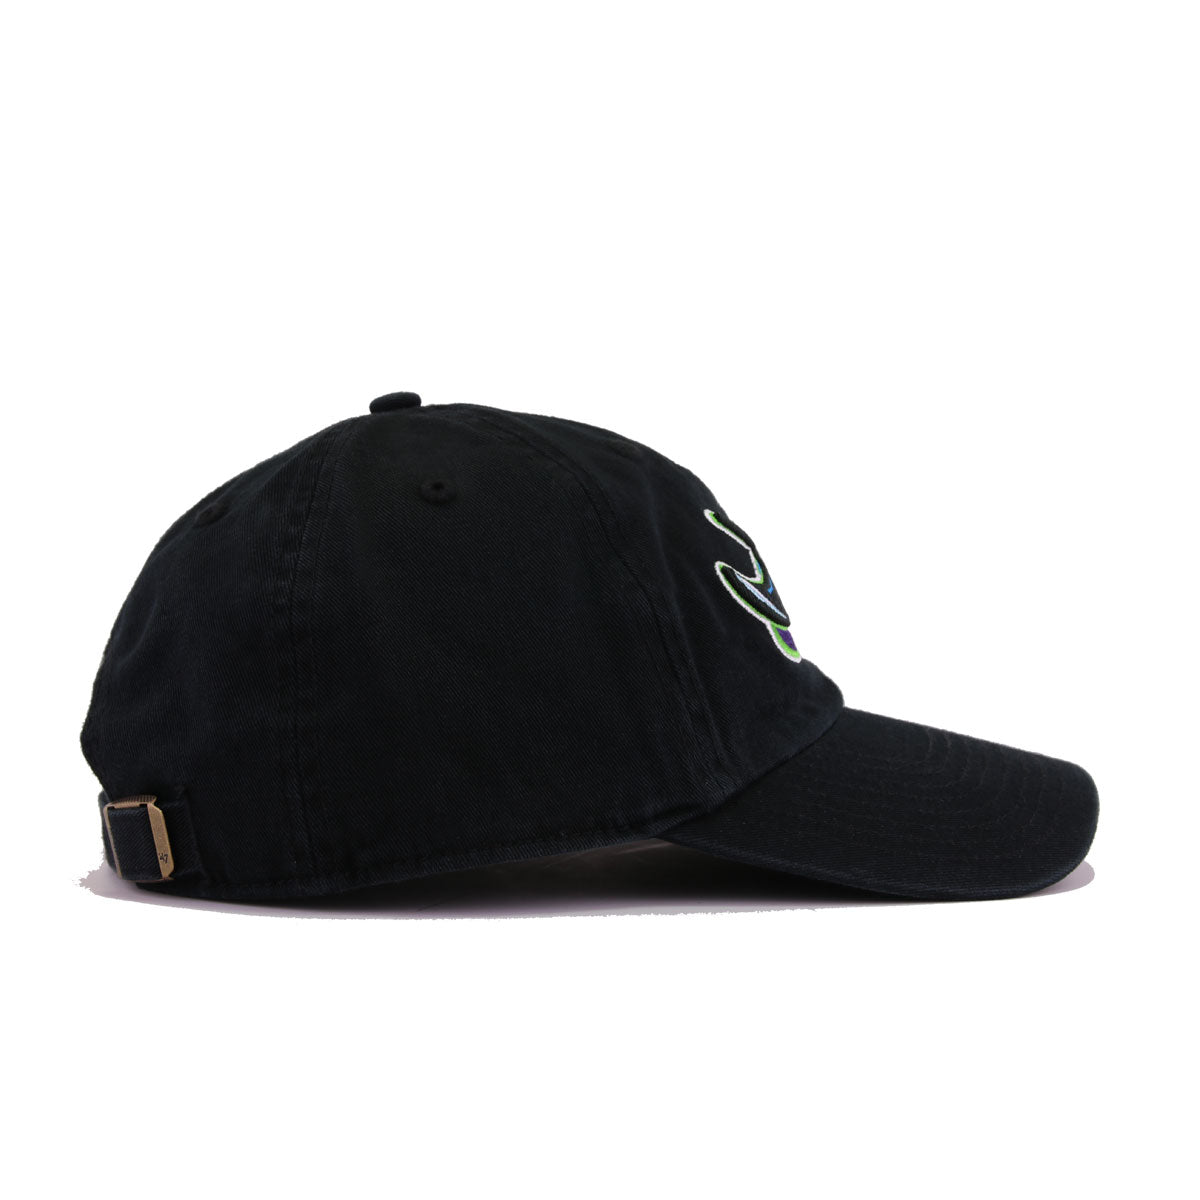 Tampa Bay Rays Black Cooperstown 47 Brand Clean Up Dad Hat